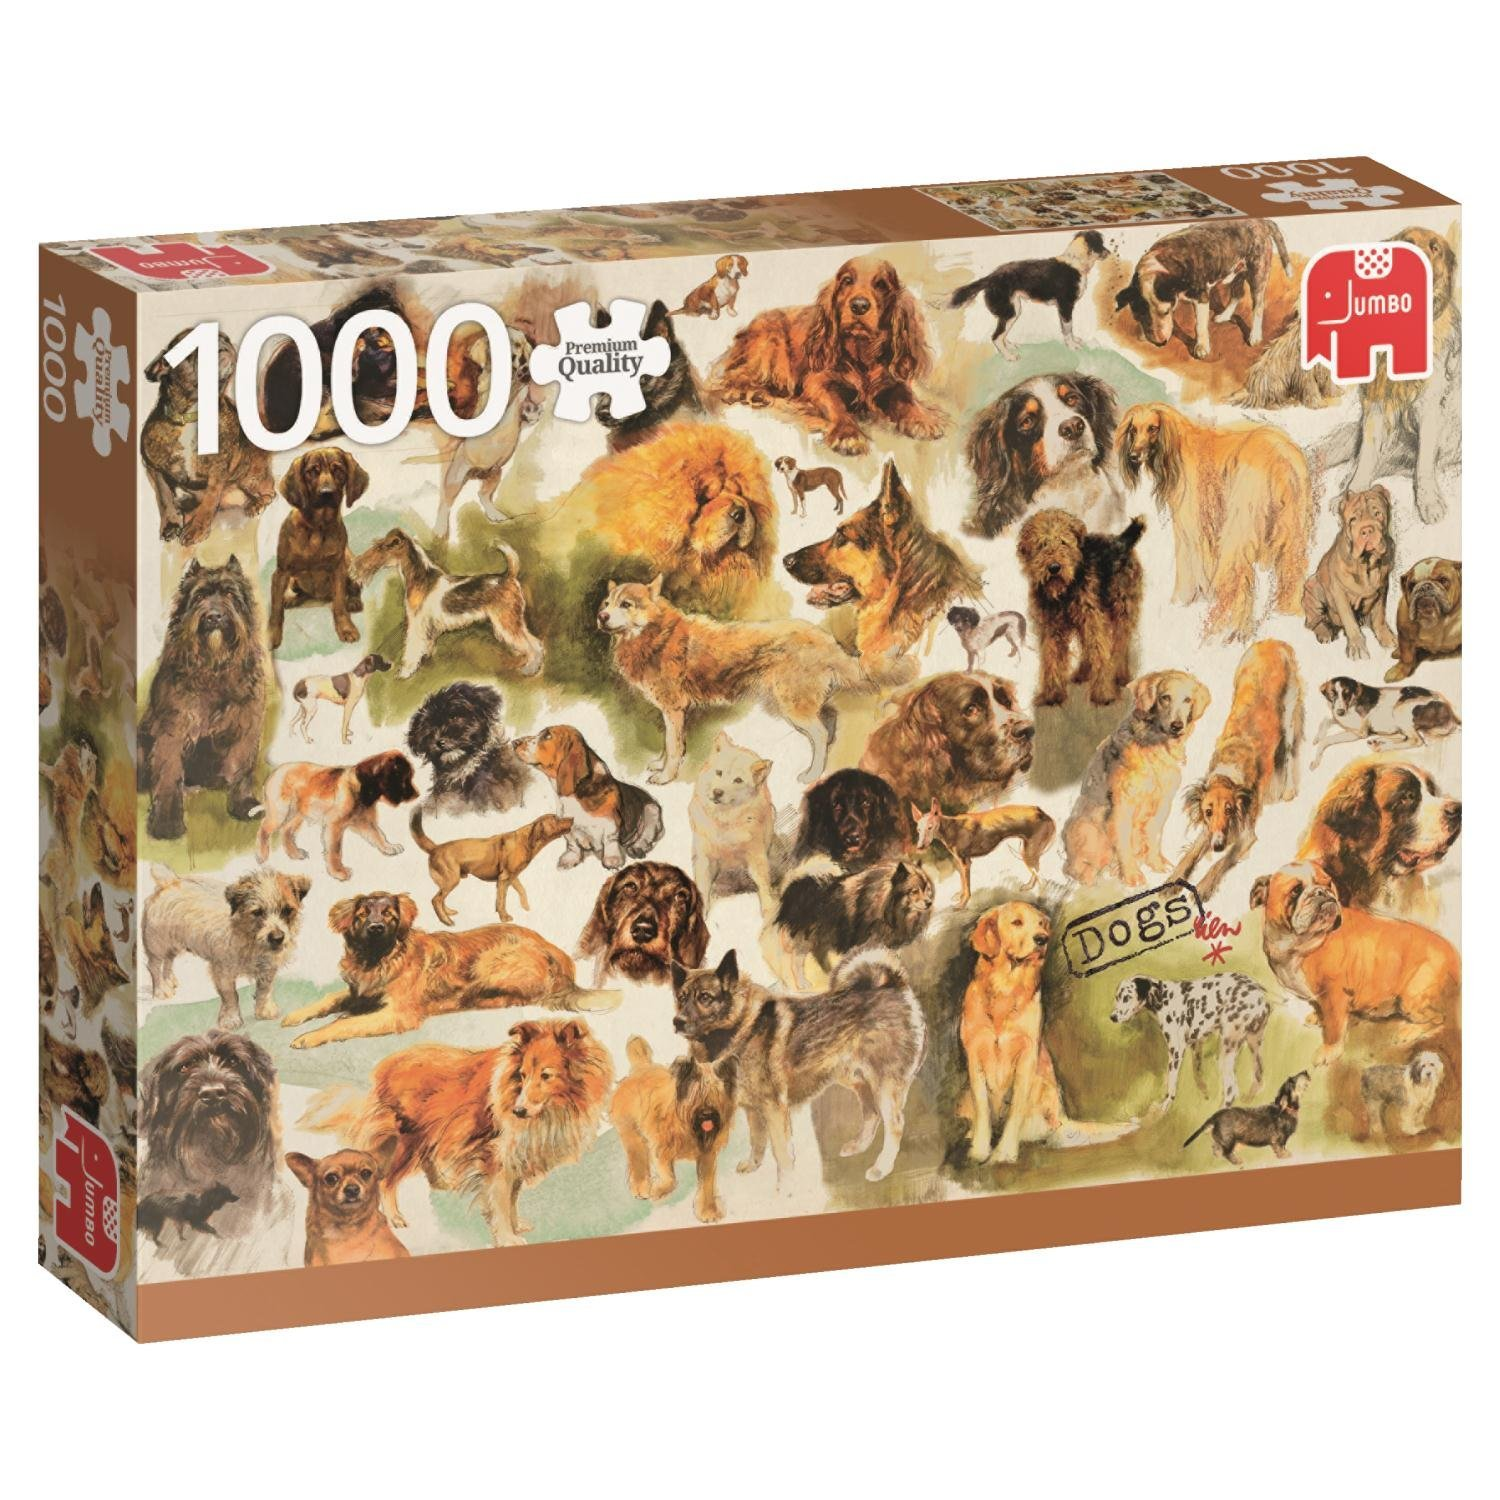 Premium Collection Jumbo, Dogs Poster, 1000pc Falcon Jigsaw Puzzle